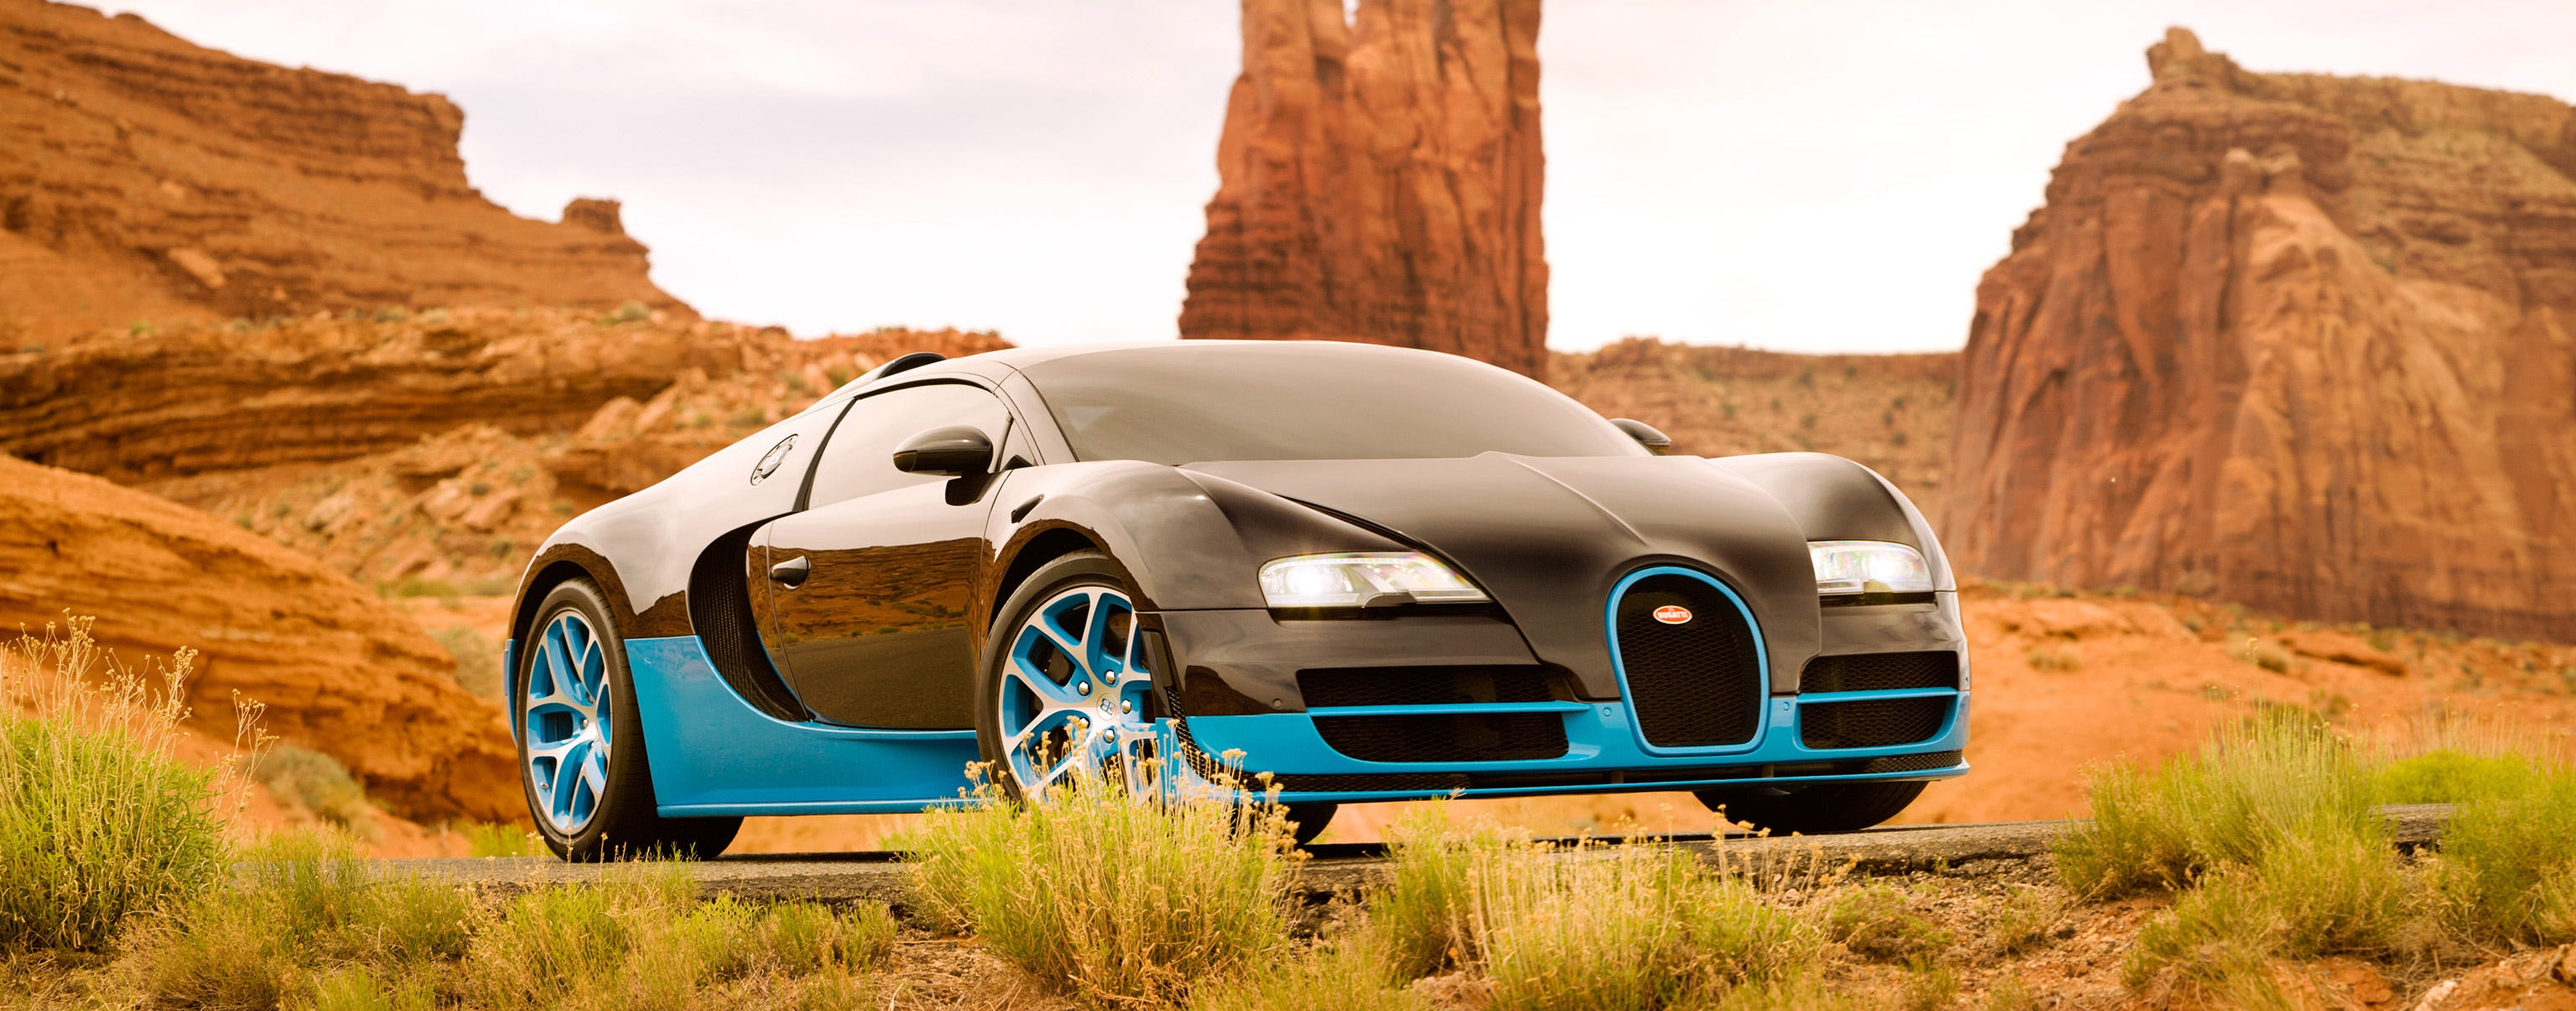 Bugatti from transformers